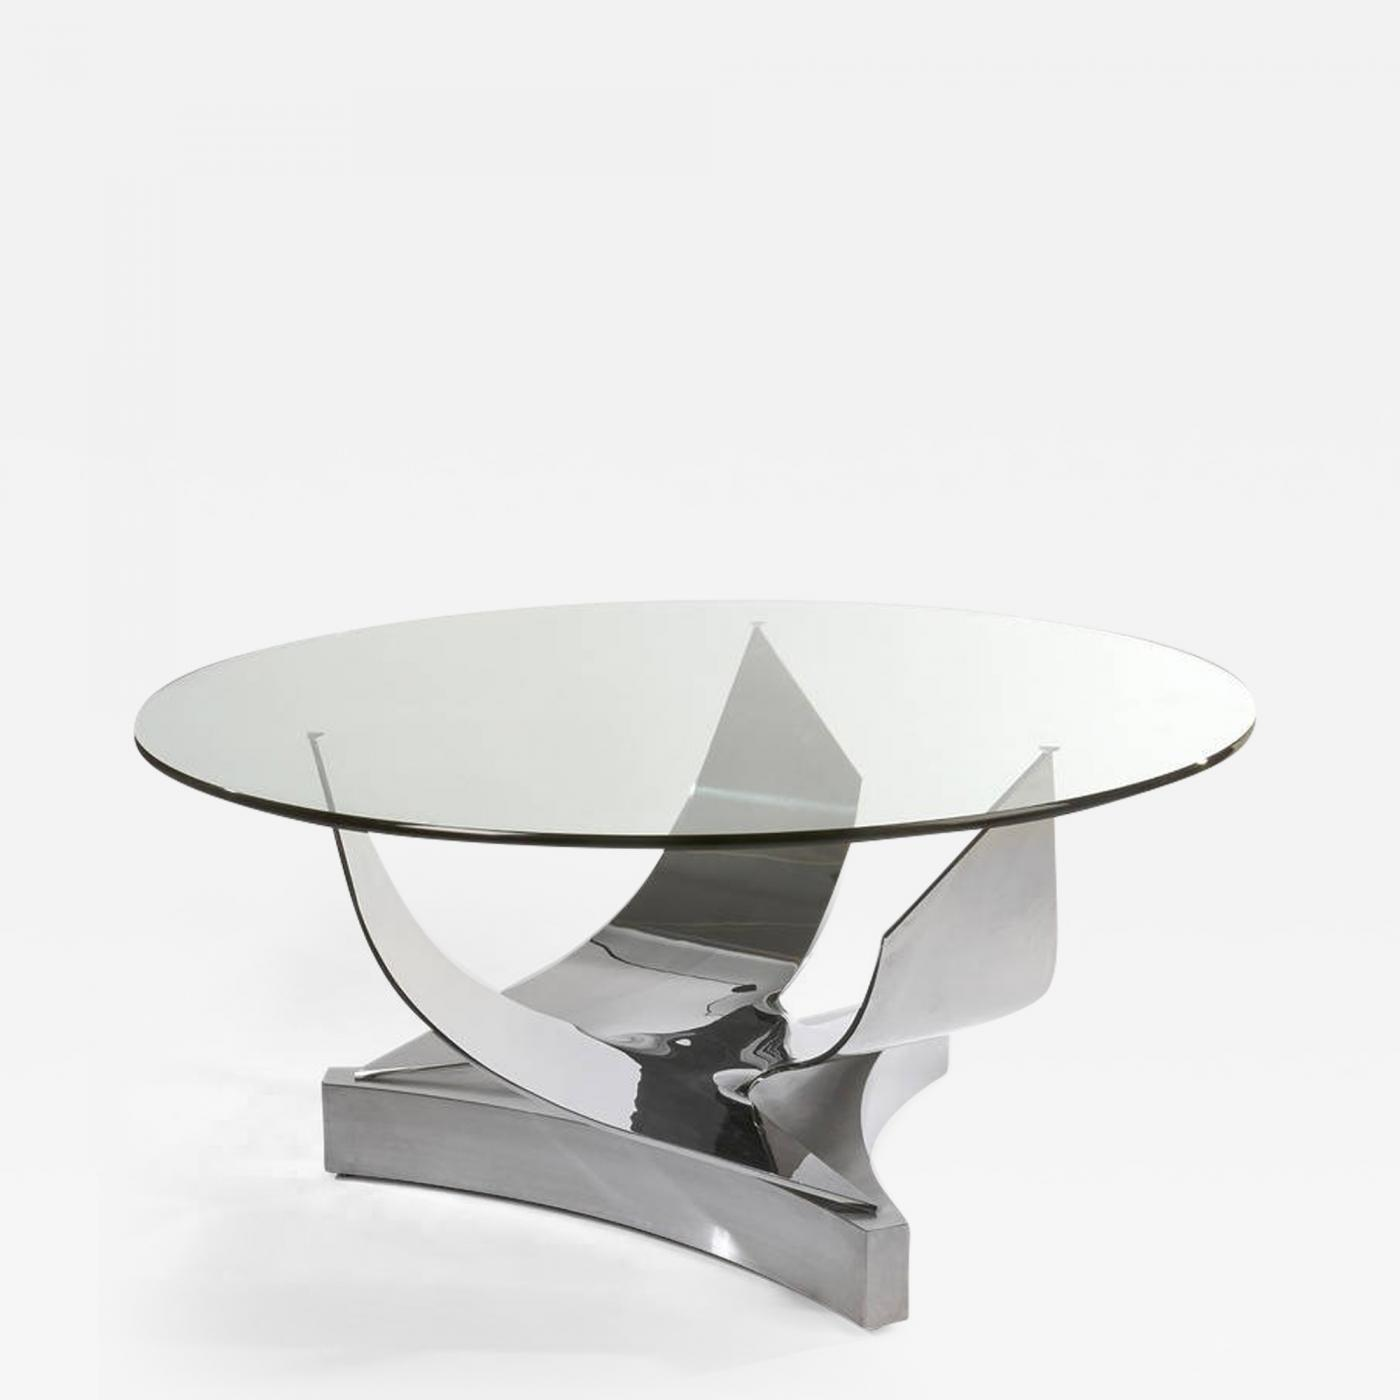 Modern Round Glass Dining Table Ron Seff Ron Seff Sculptural Round Stainless Steel And Glass Dining Table